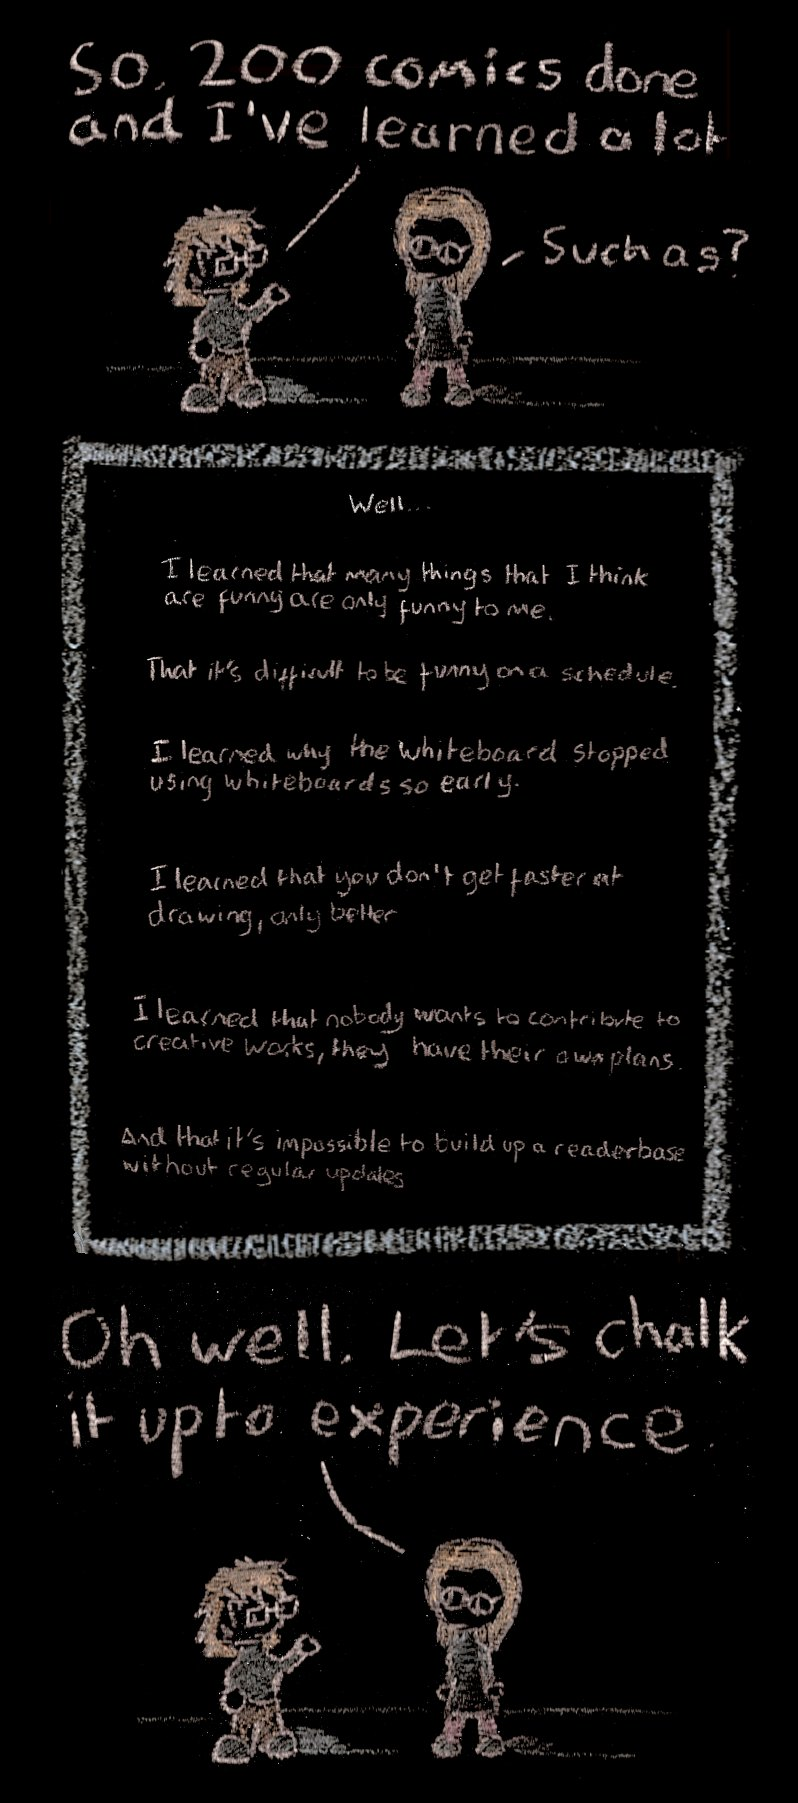 I also learned some extra rules about the deathnote.